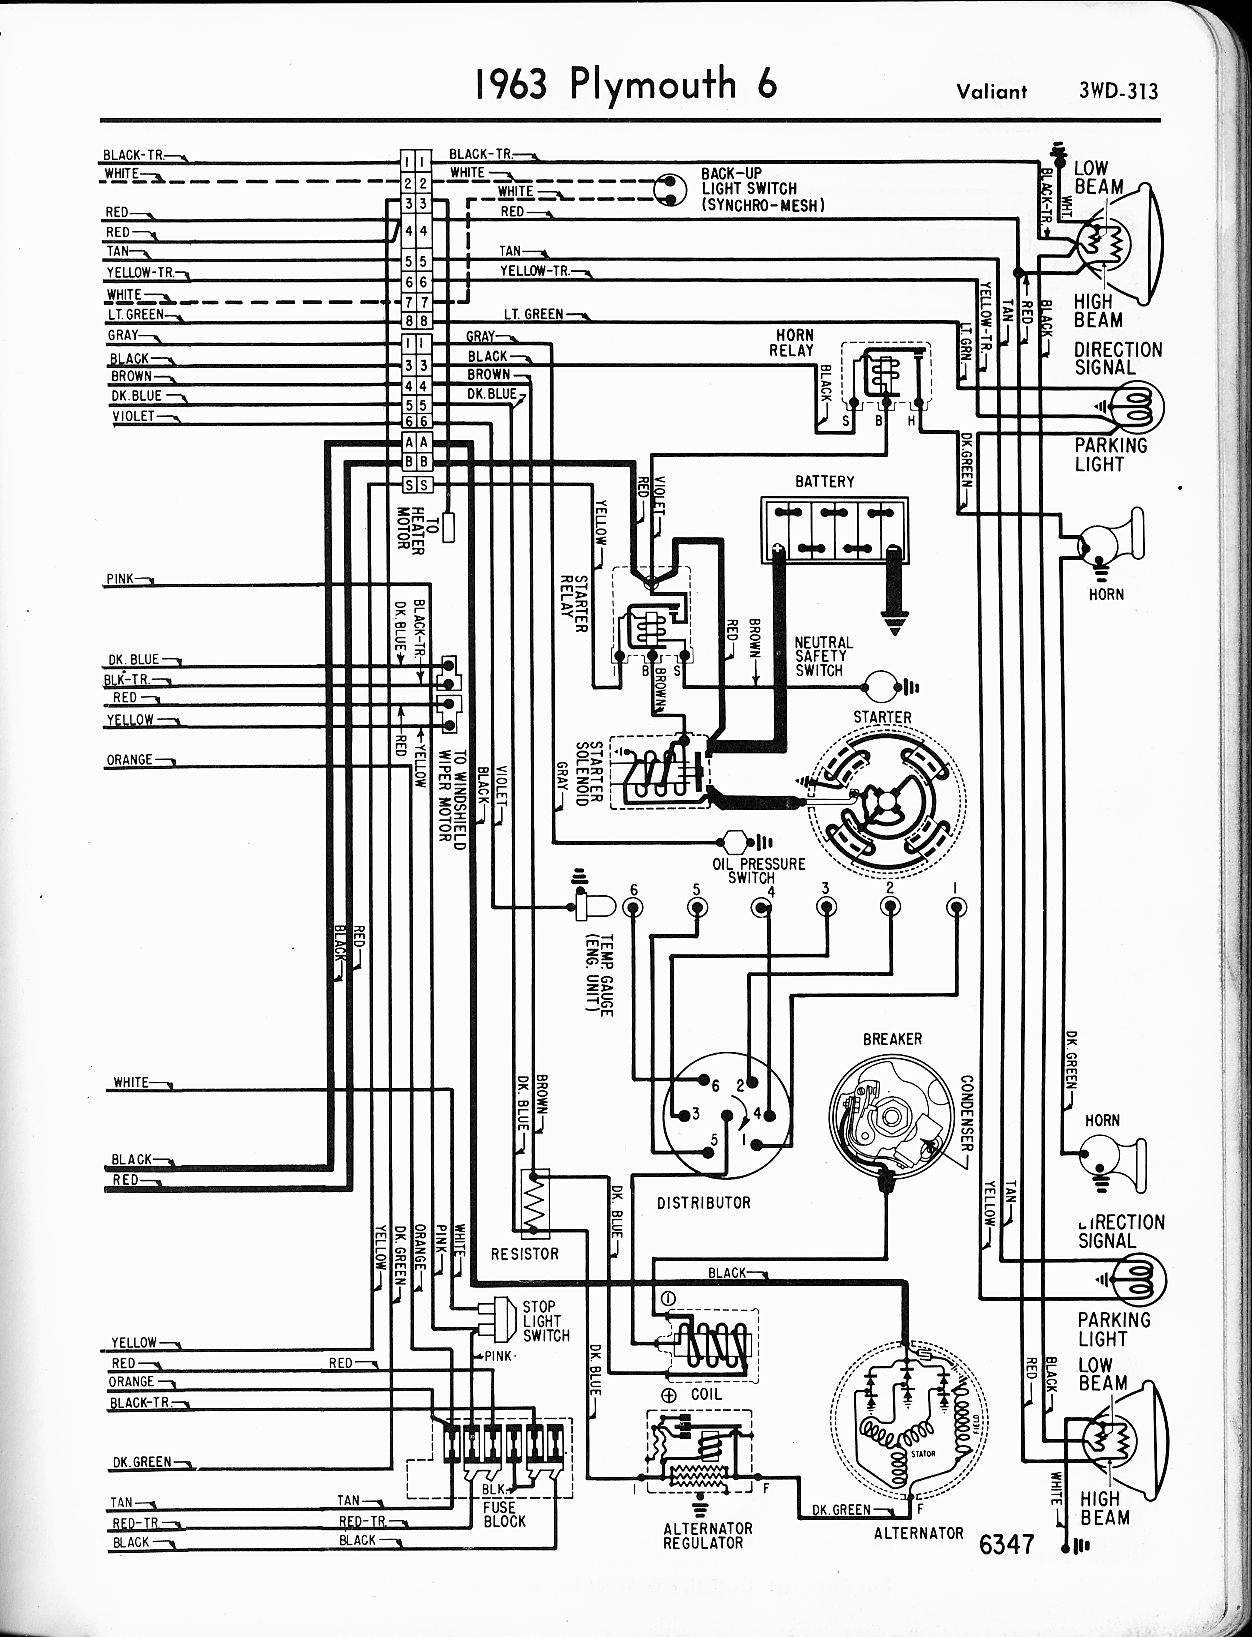 Amazing 69 Roadrunner Wiring Diagram Dashboard Light General Wiring Wiring Cloud Orsalboapumohammedshrineorg